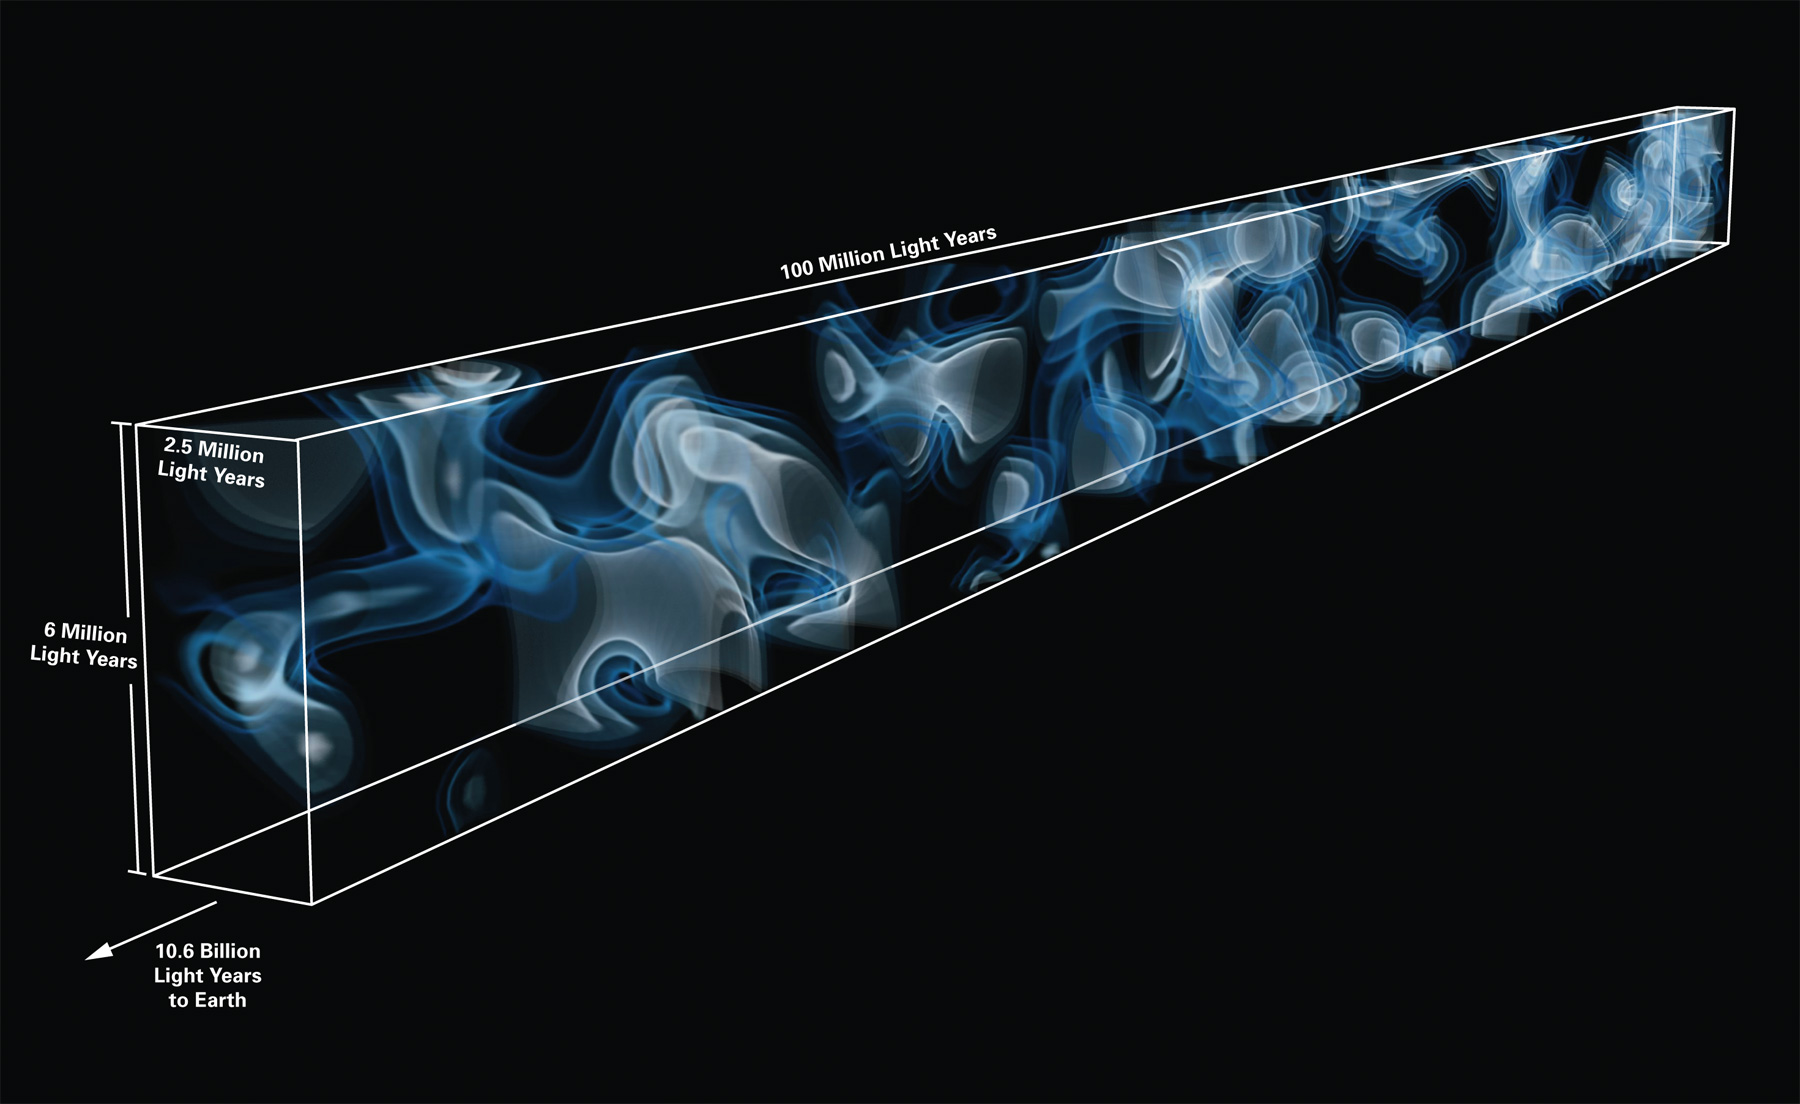 3D map of the cosmic web 10.8 billion light years from Earth